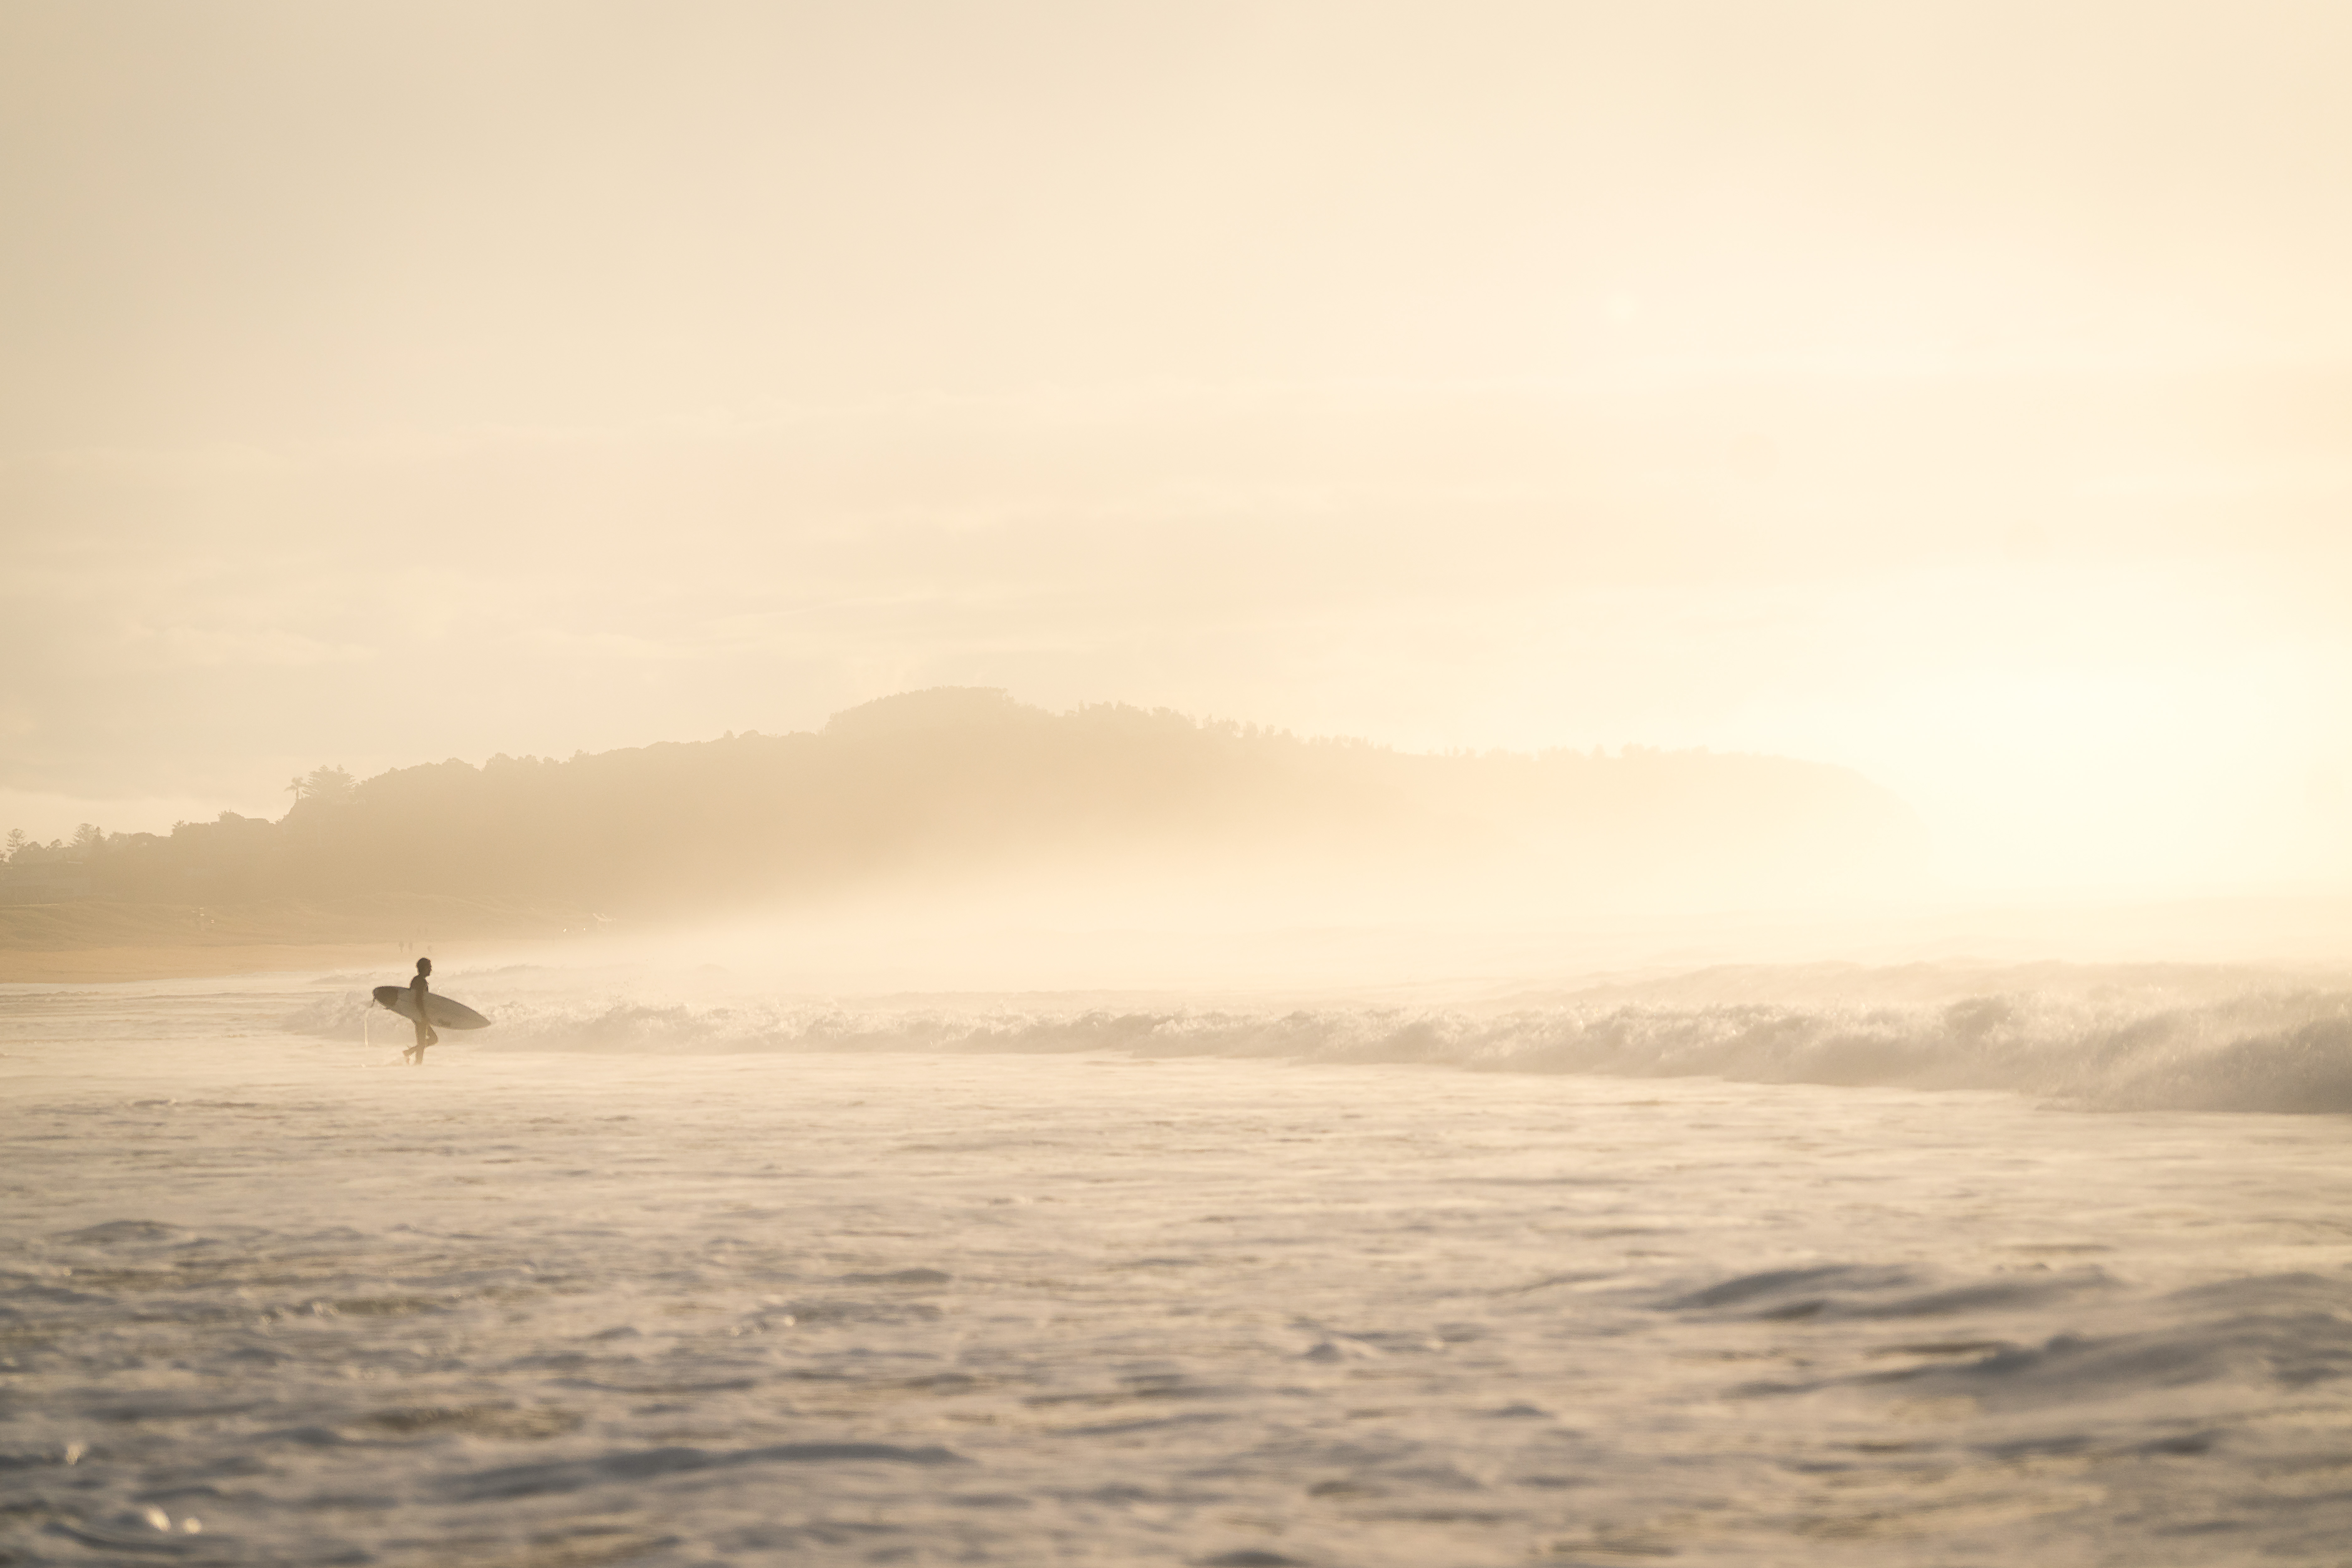 North Narrabeen Surfer